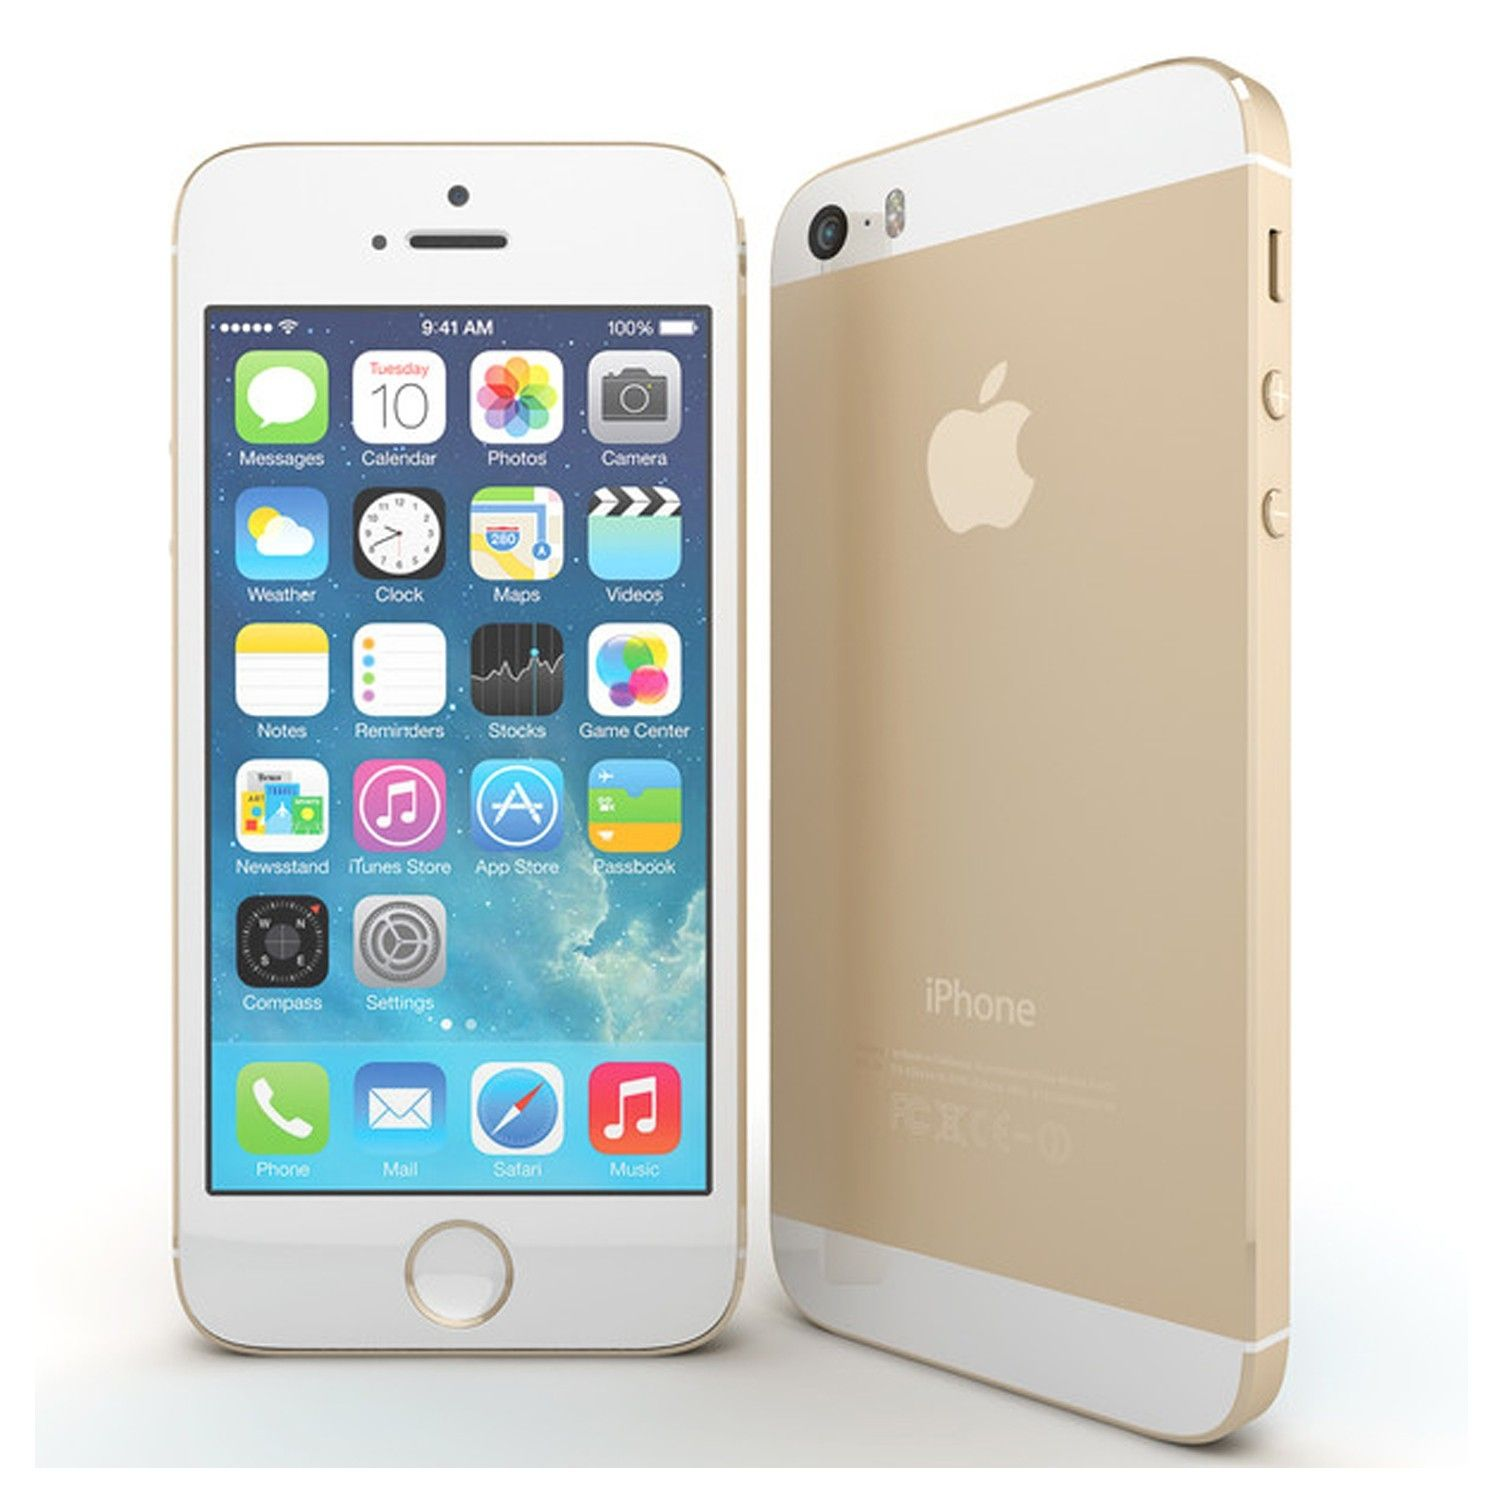 iphone 5s 64 gb gold